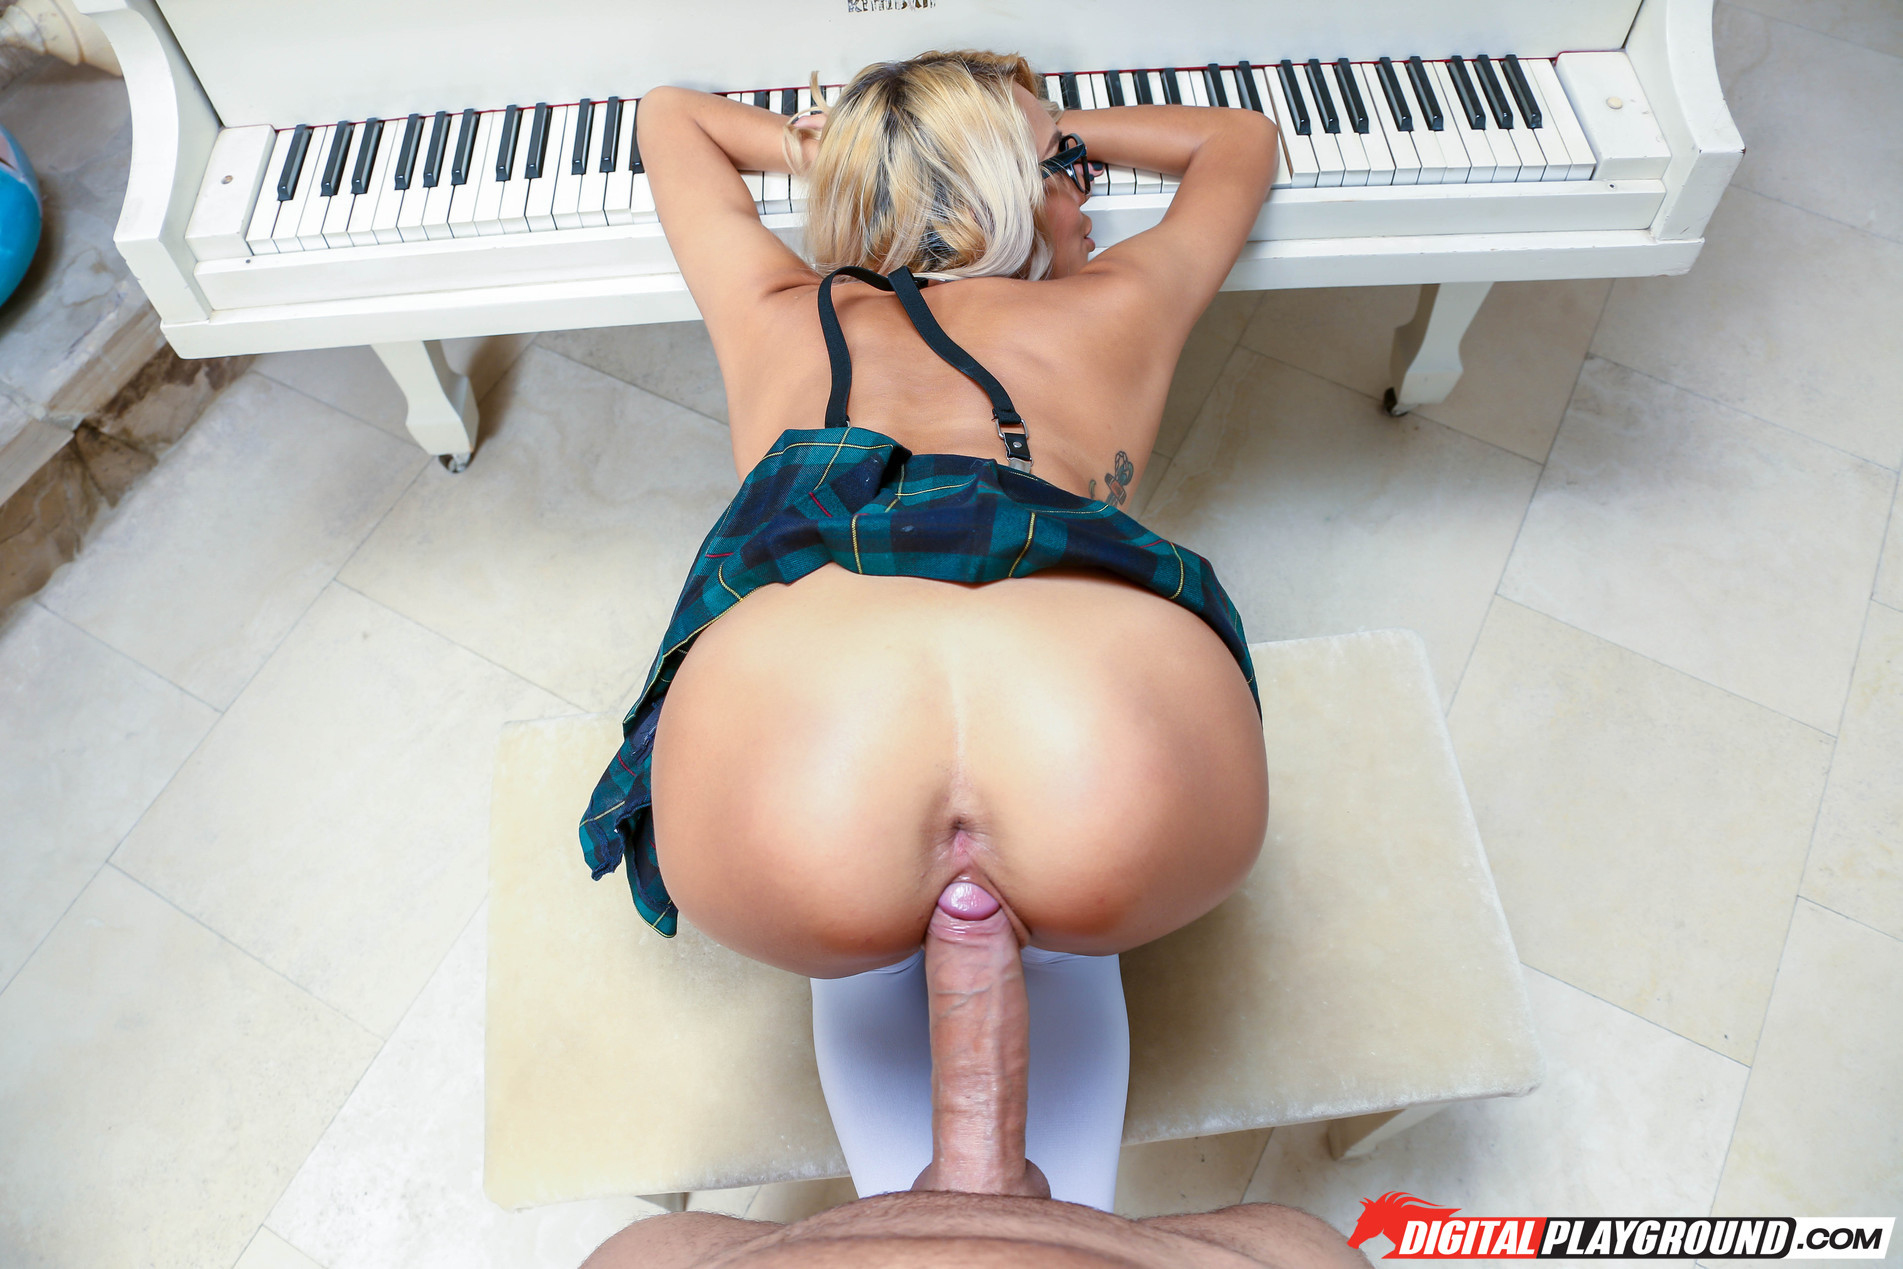 Janice griffith benefits from dicked and face jizzed by her piano tutor